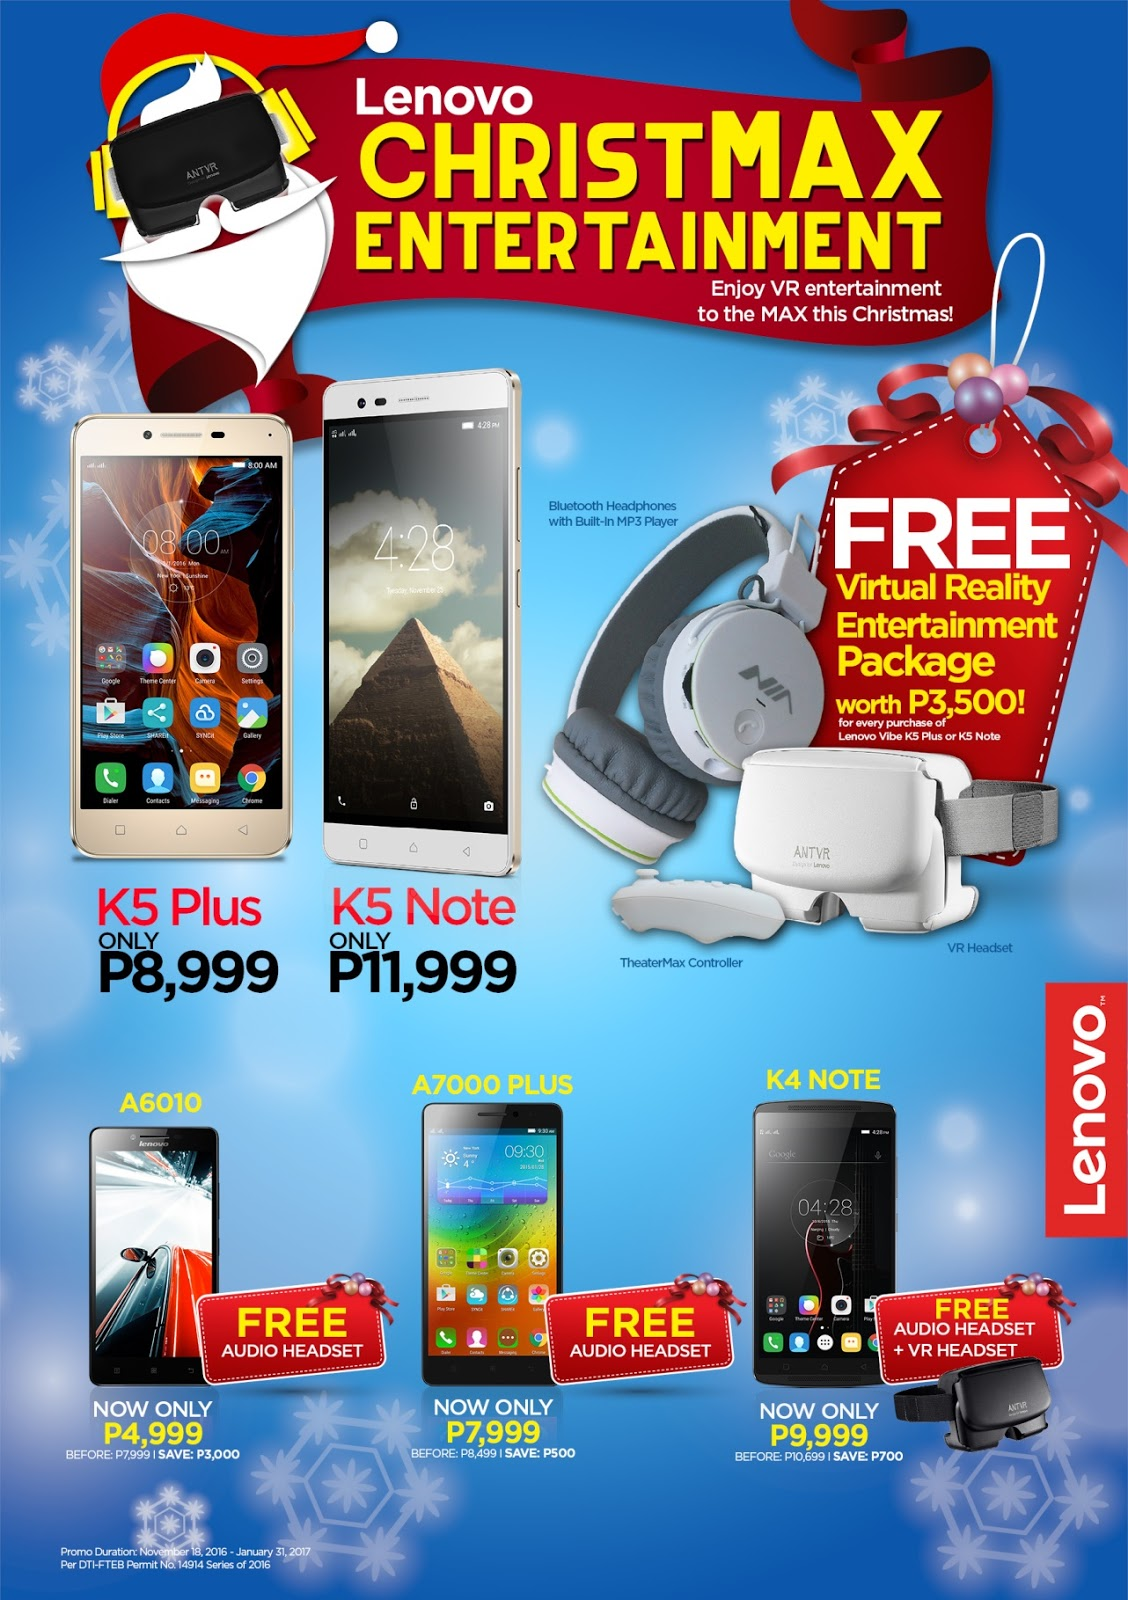 Lenovo ChristMax Entertainment Promo